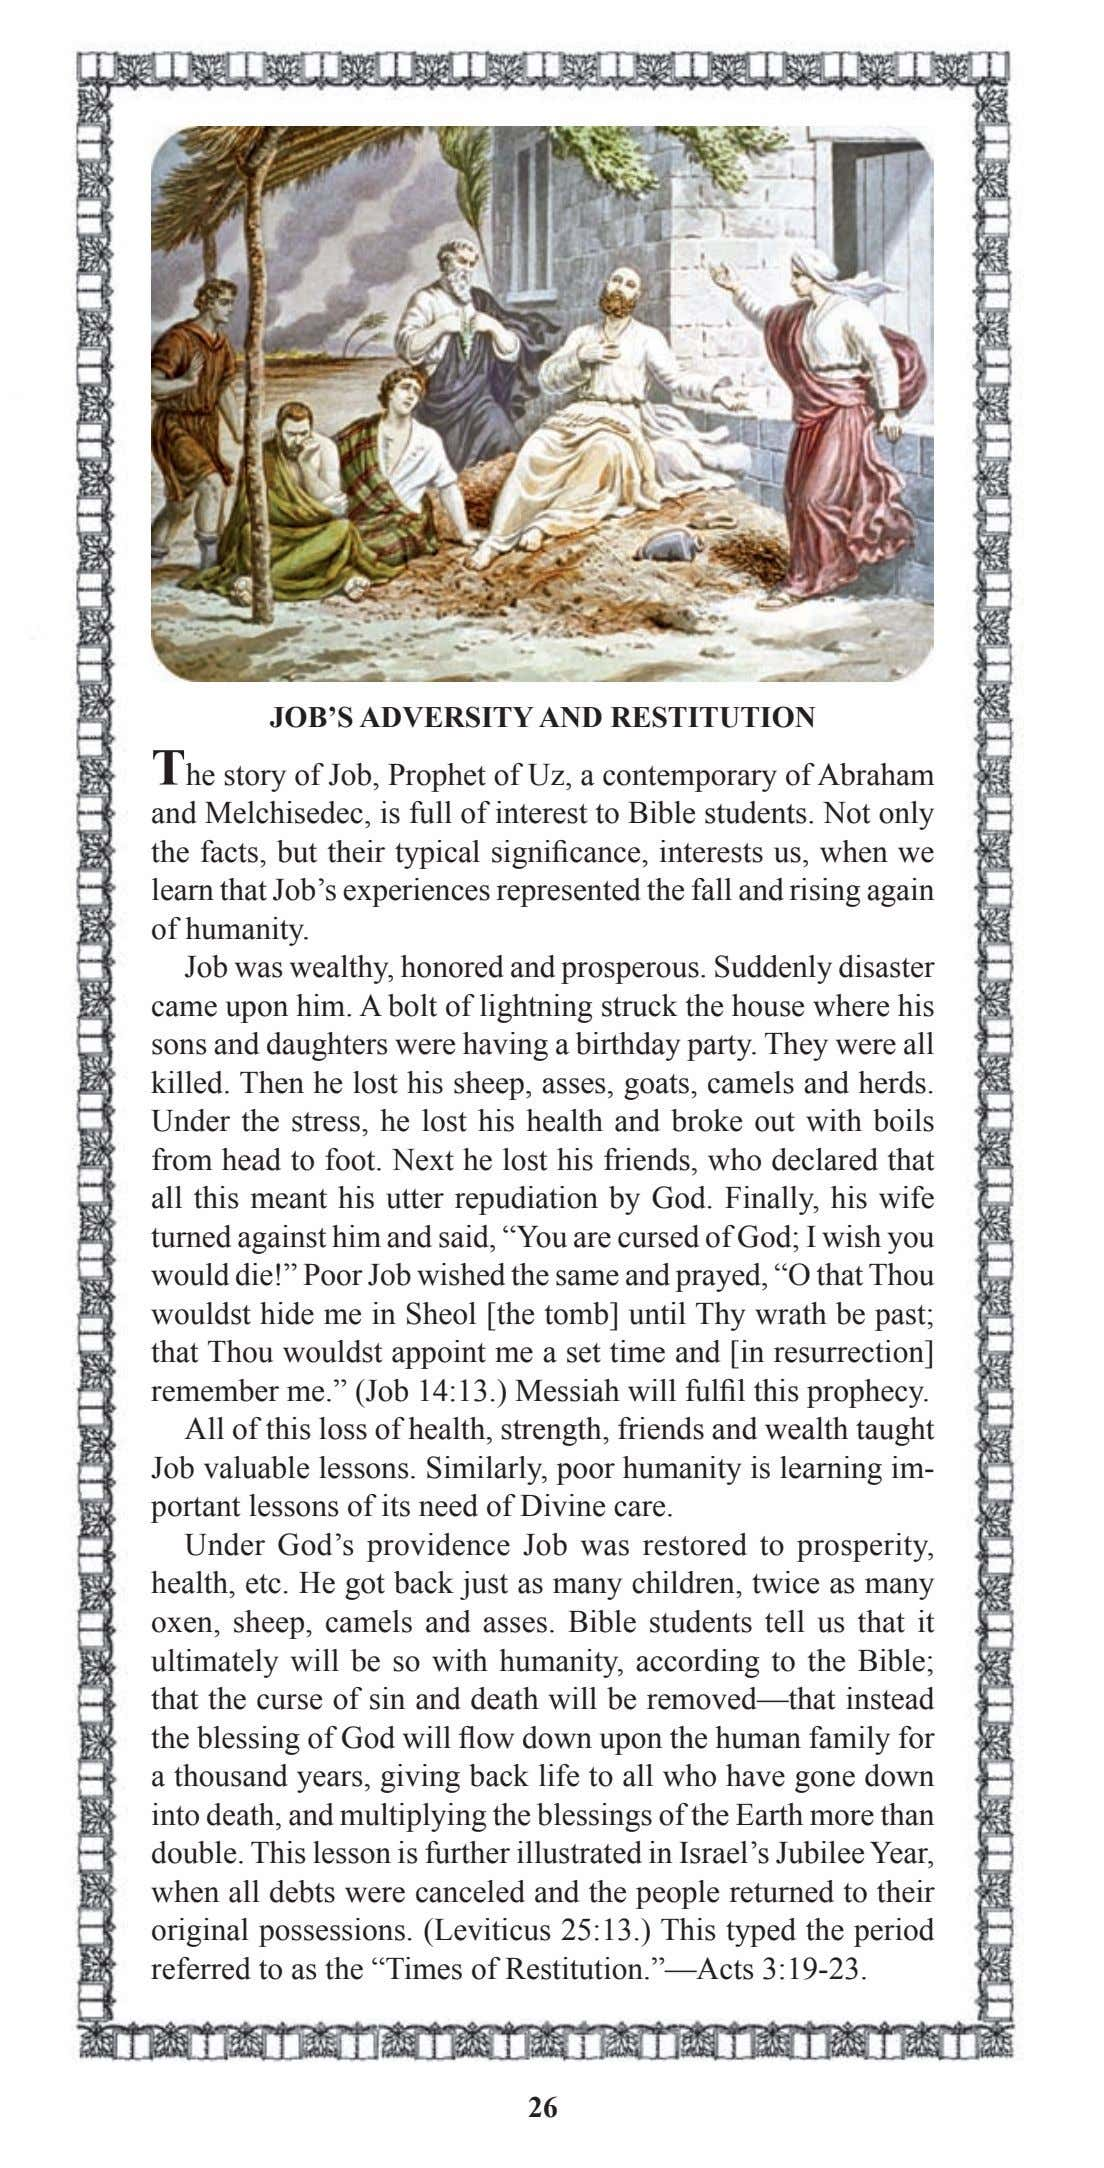 JOB'S ADVERSITY AND RESTITUTION The story of Job, Prophet of Uz, a contemporary of Abraham